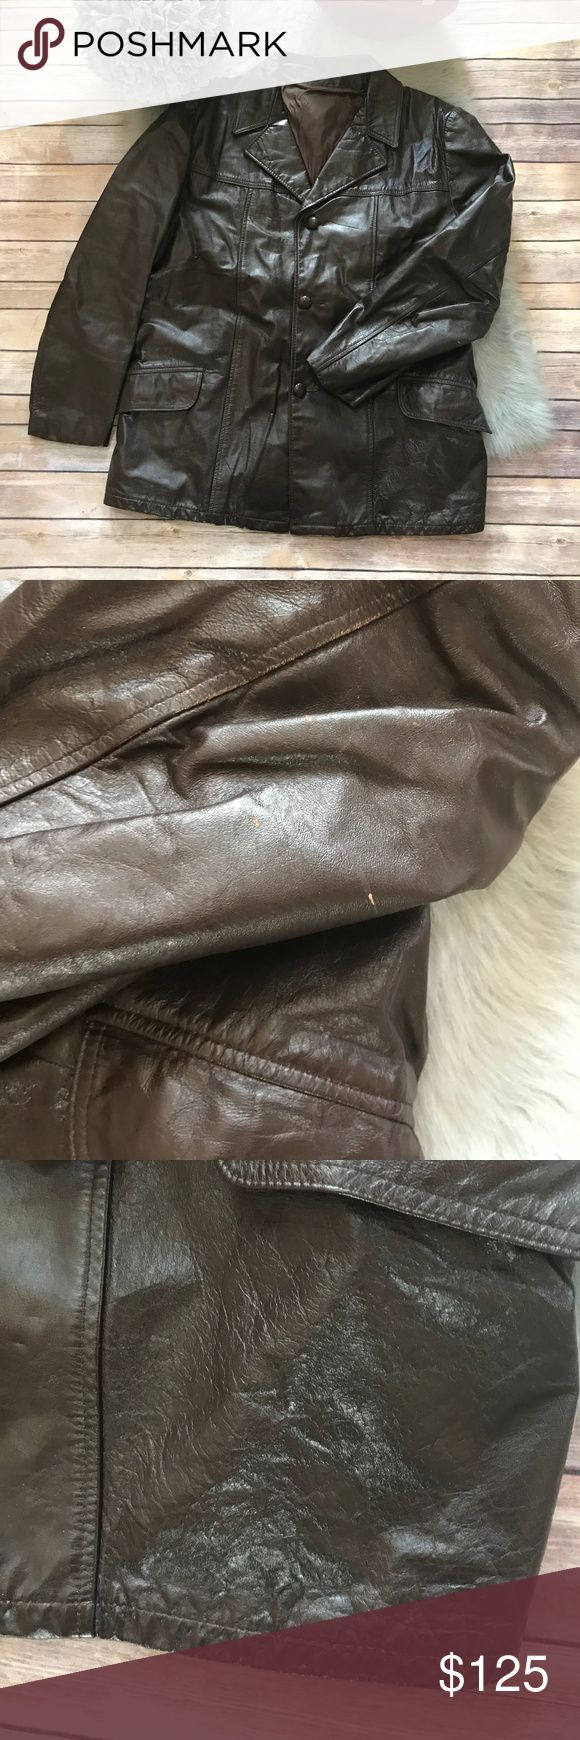 Vintage Chocolate Brown Leather Jacket Coat Blazer Vintage Chocolate Brown Leather Jacket Coat Blazer  No brand.   Originally had a zip out lining or trim. Buttons & pockets. Tag says it should be taken or mailed to Leathercraft Process in NYC for best cleaning results, but alas, they are out of business. Some wear to leather as shown in pics.  May be more that I did not see but overall, very good vintage condition. No size tag but my husband wears a large and it fits him well (thin and…